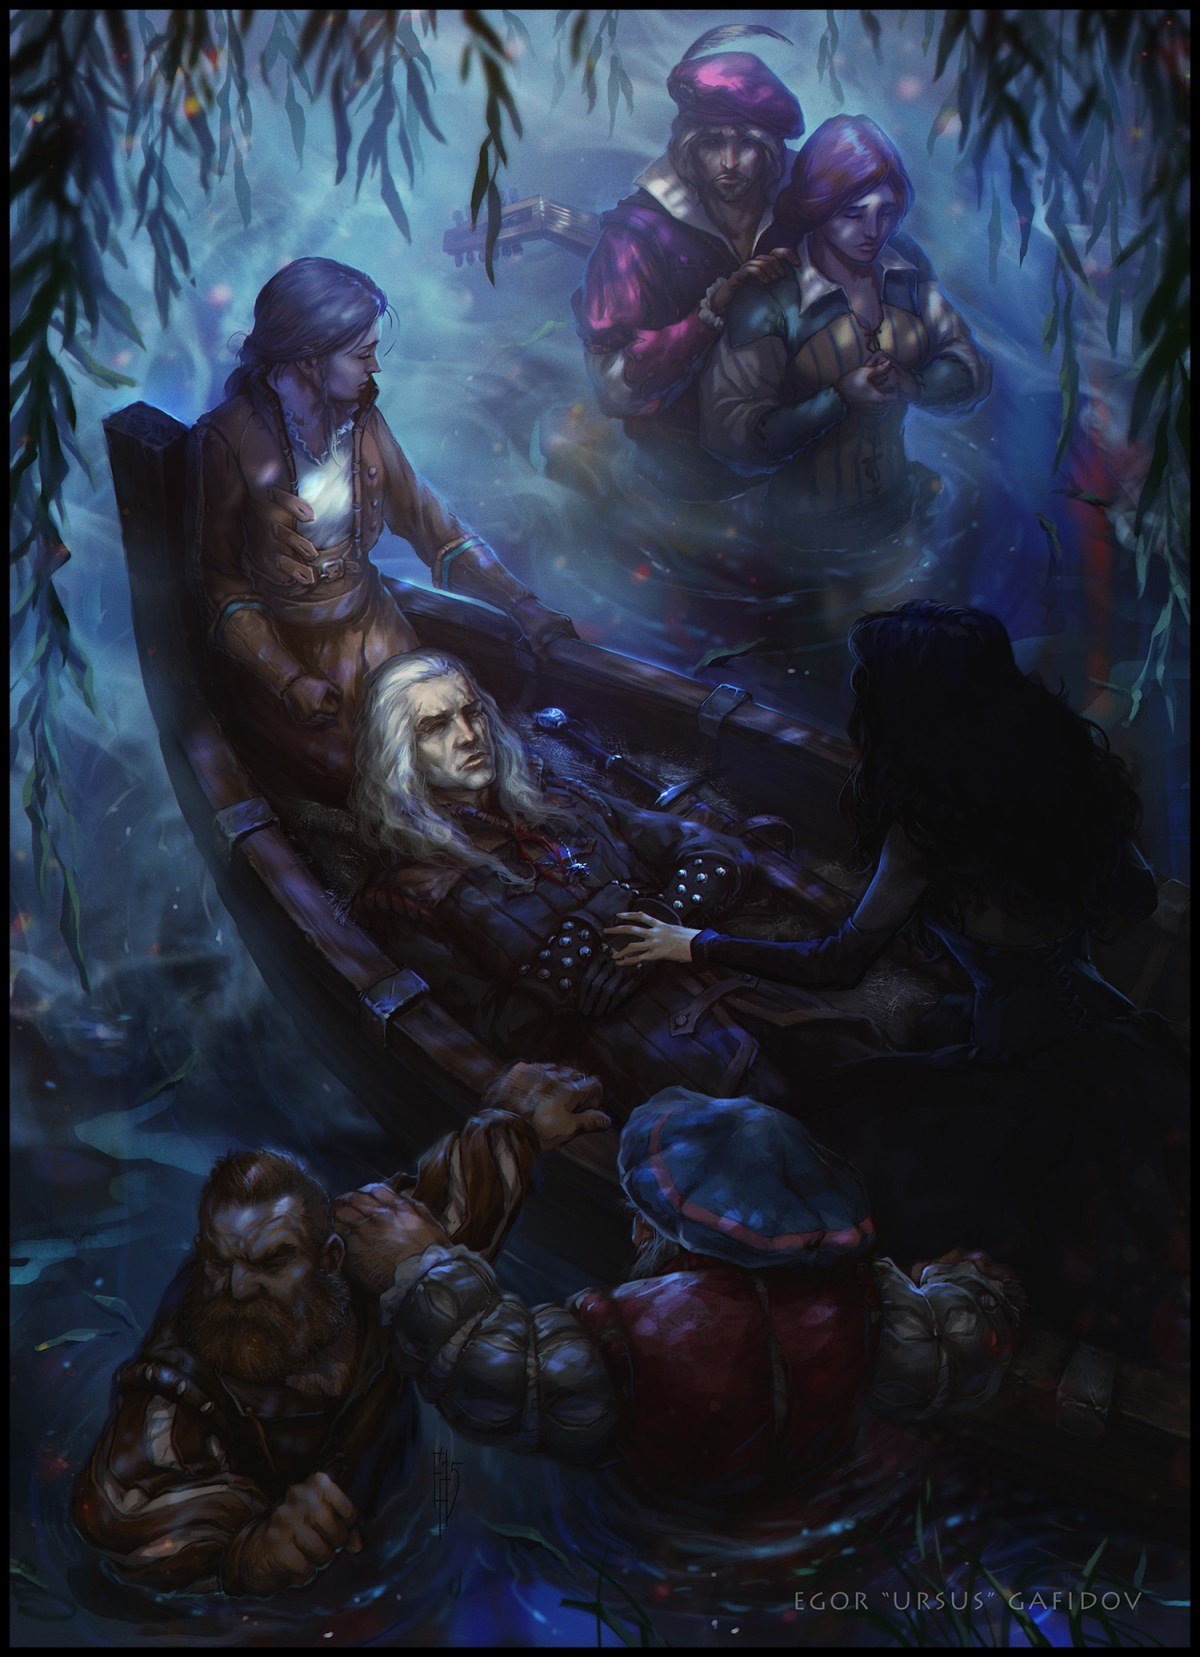 Geralt and Yennefer's dead bodies are placed on a boat to Avalon